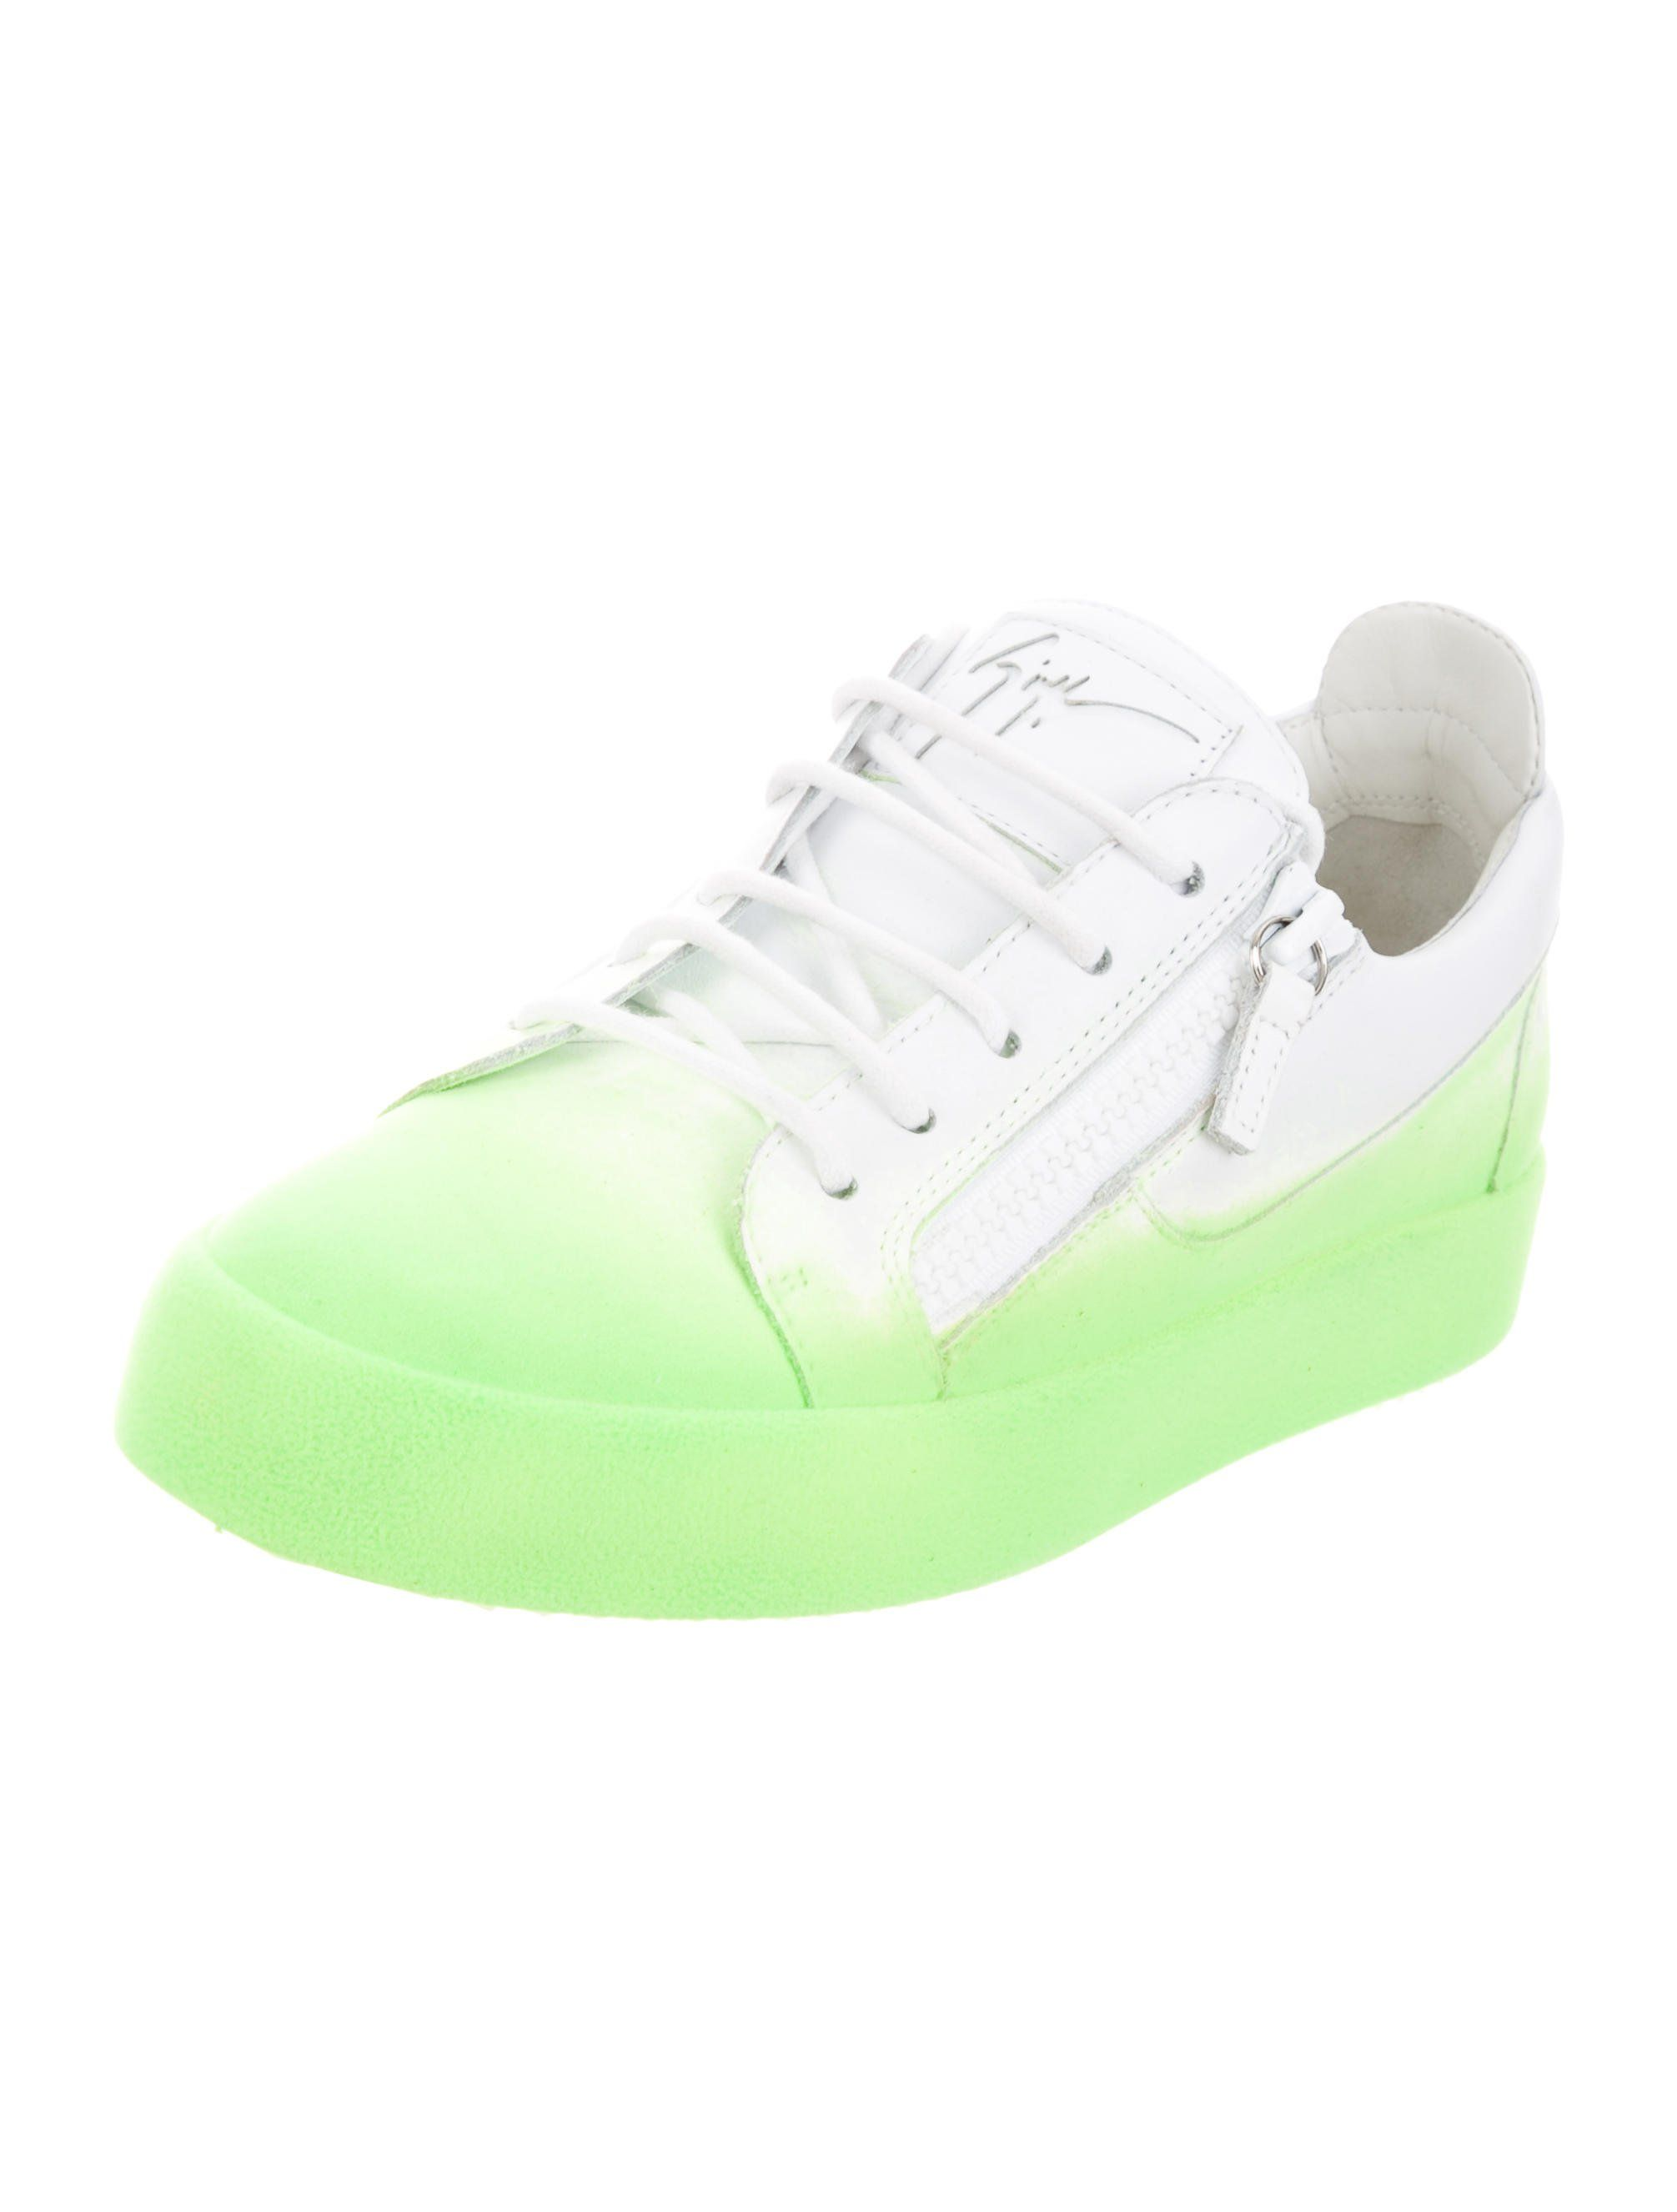 7b16b6262ad81 Men's white leather with lime green velvet trim Giuseppe Zanotti low-top  sneakers featuring tonal